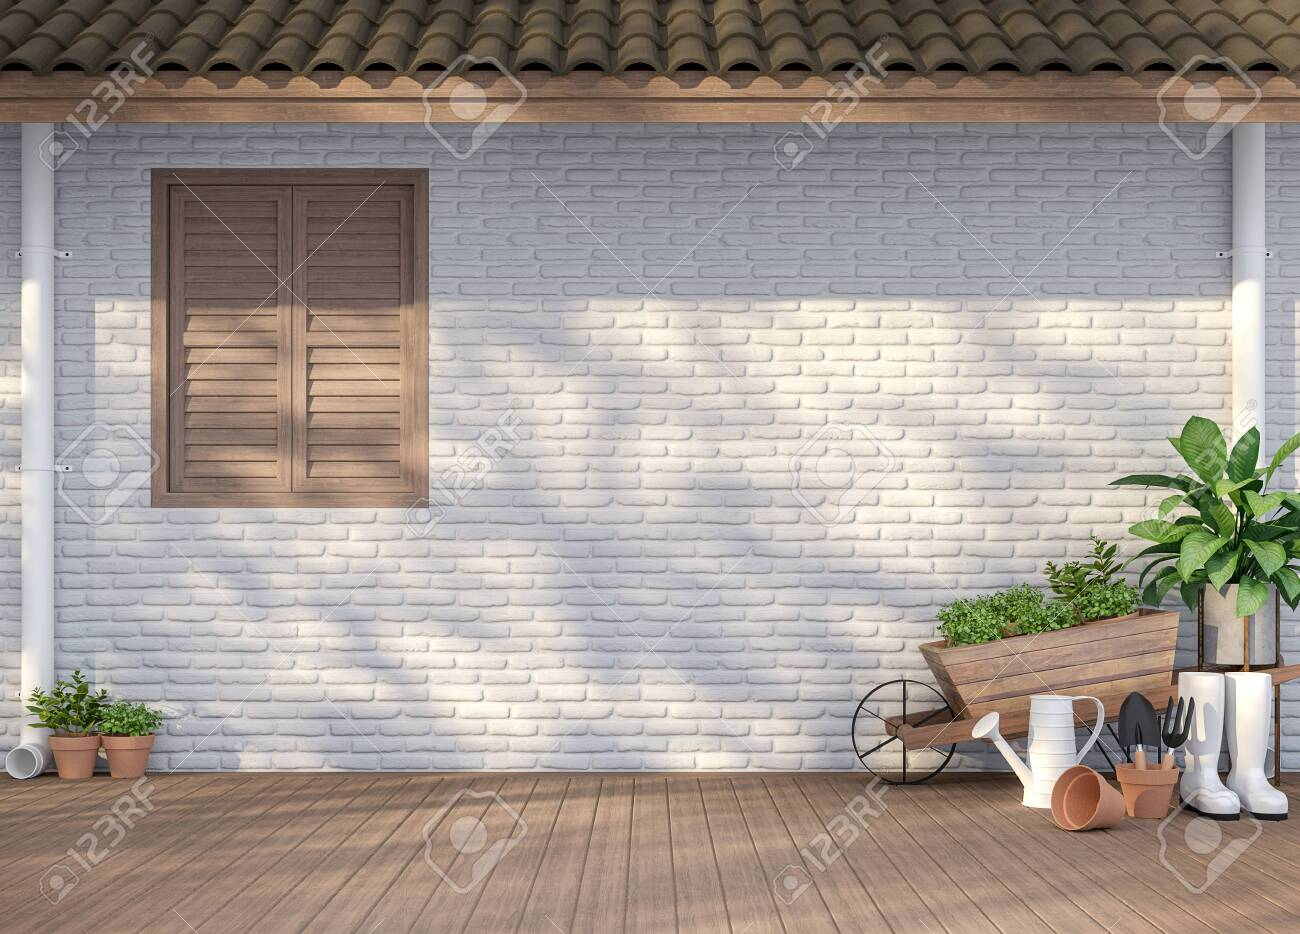 House Terrace With Garden Equipment 3d Render There Are Empty